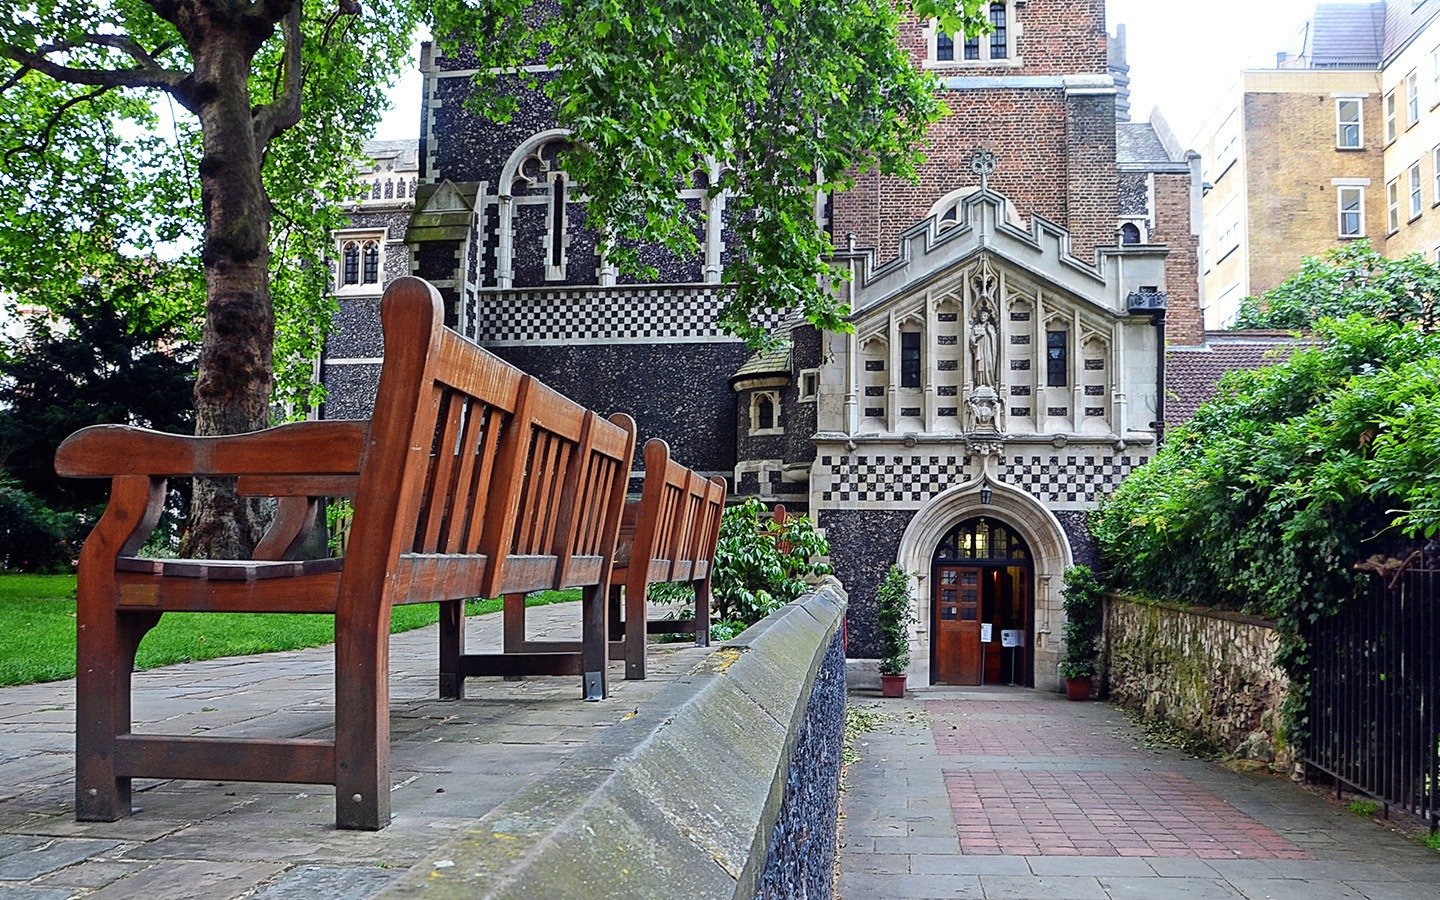 The Church of St Bartholomew the Great